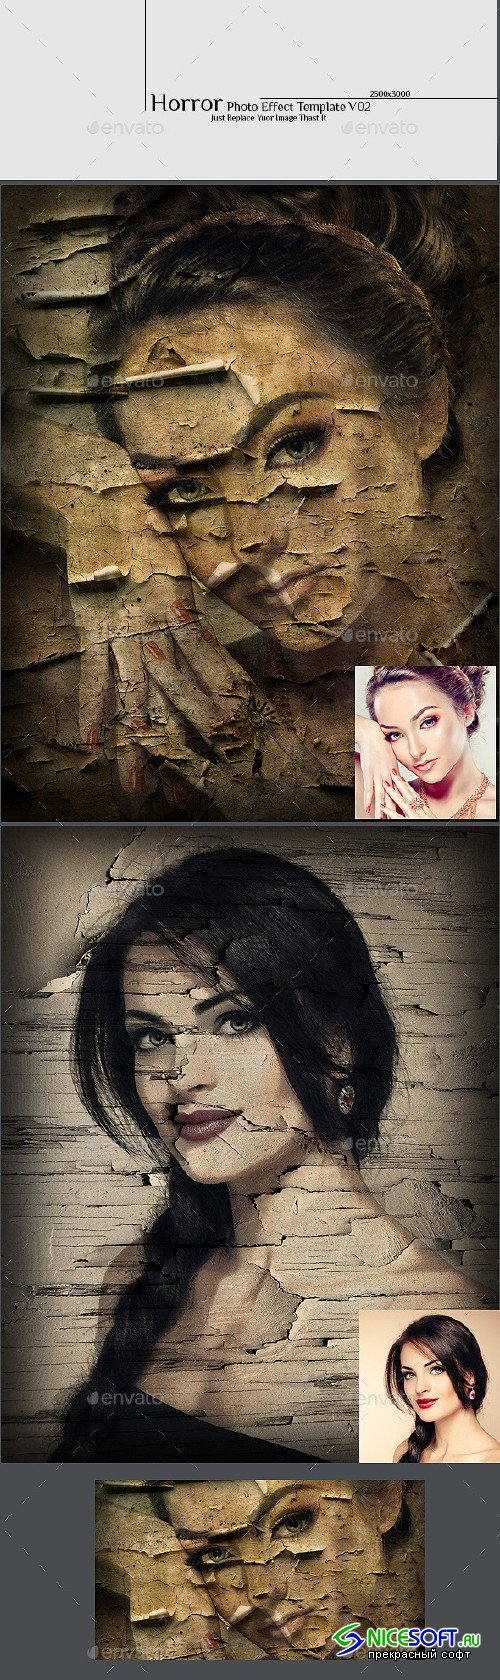 GraphicRiver - Horror Photo Effect Template v02 12729555